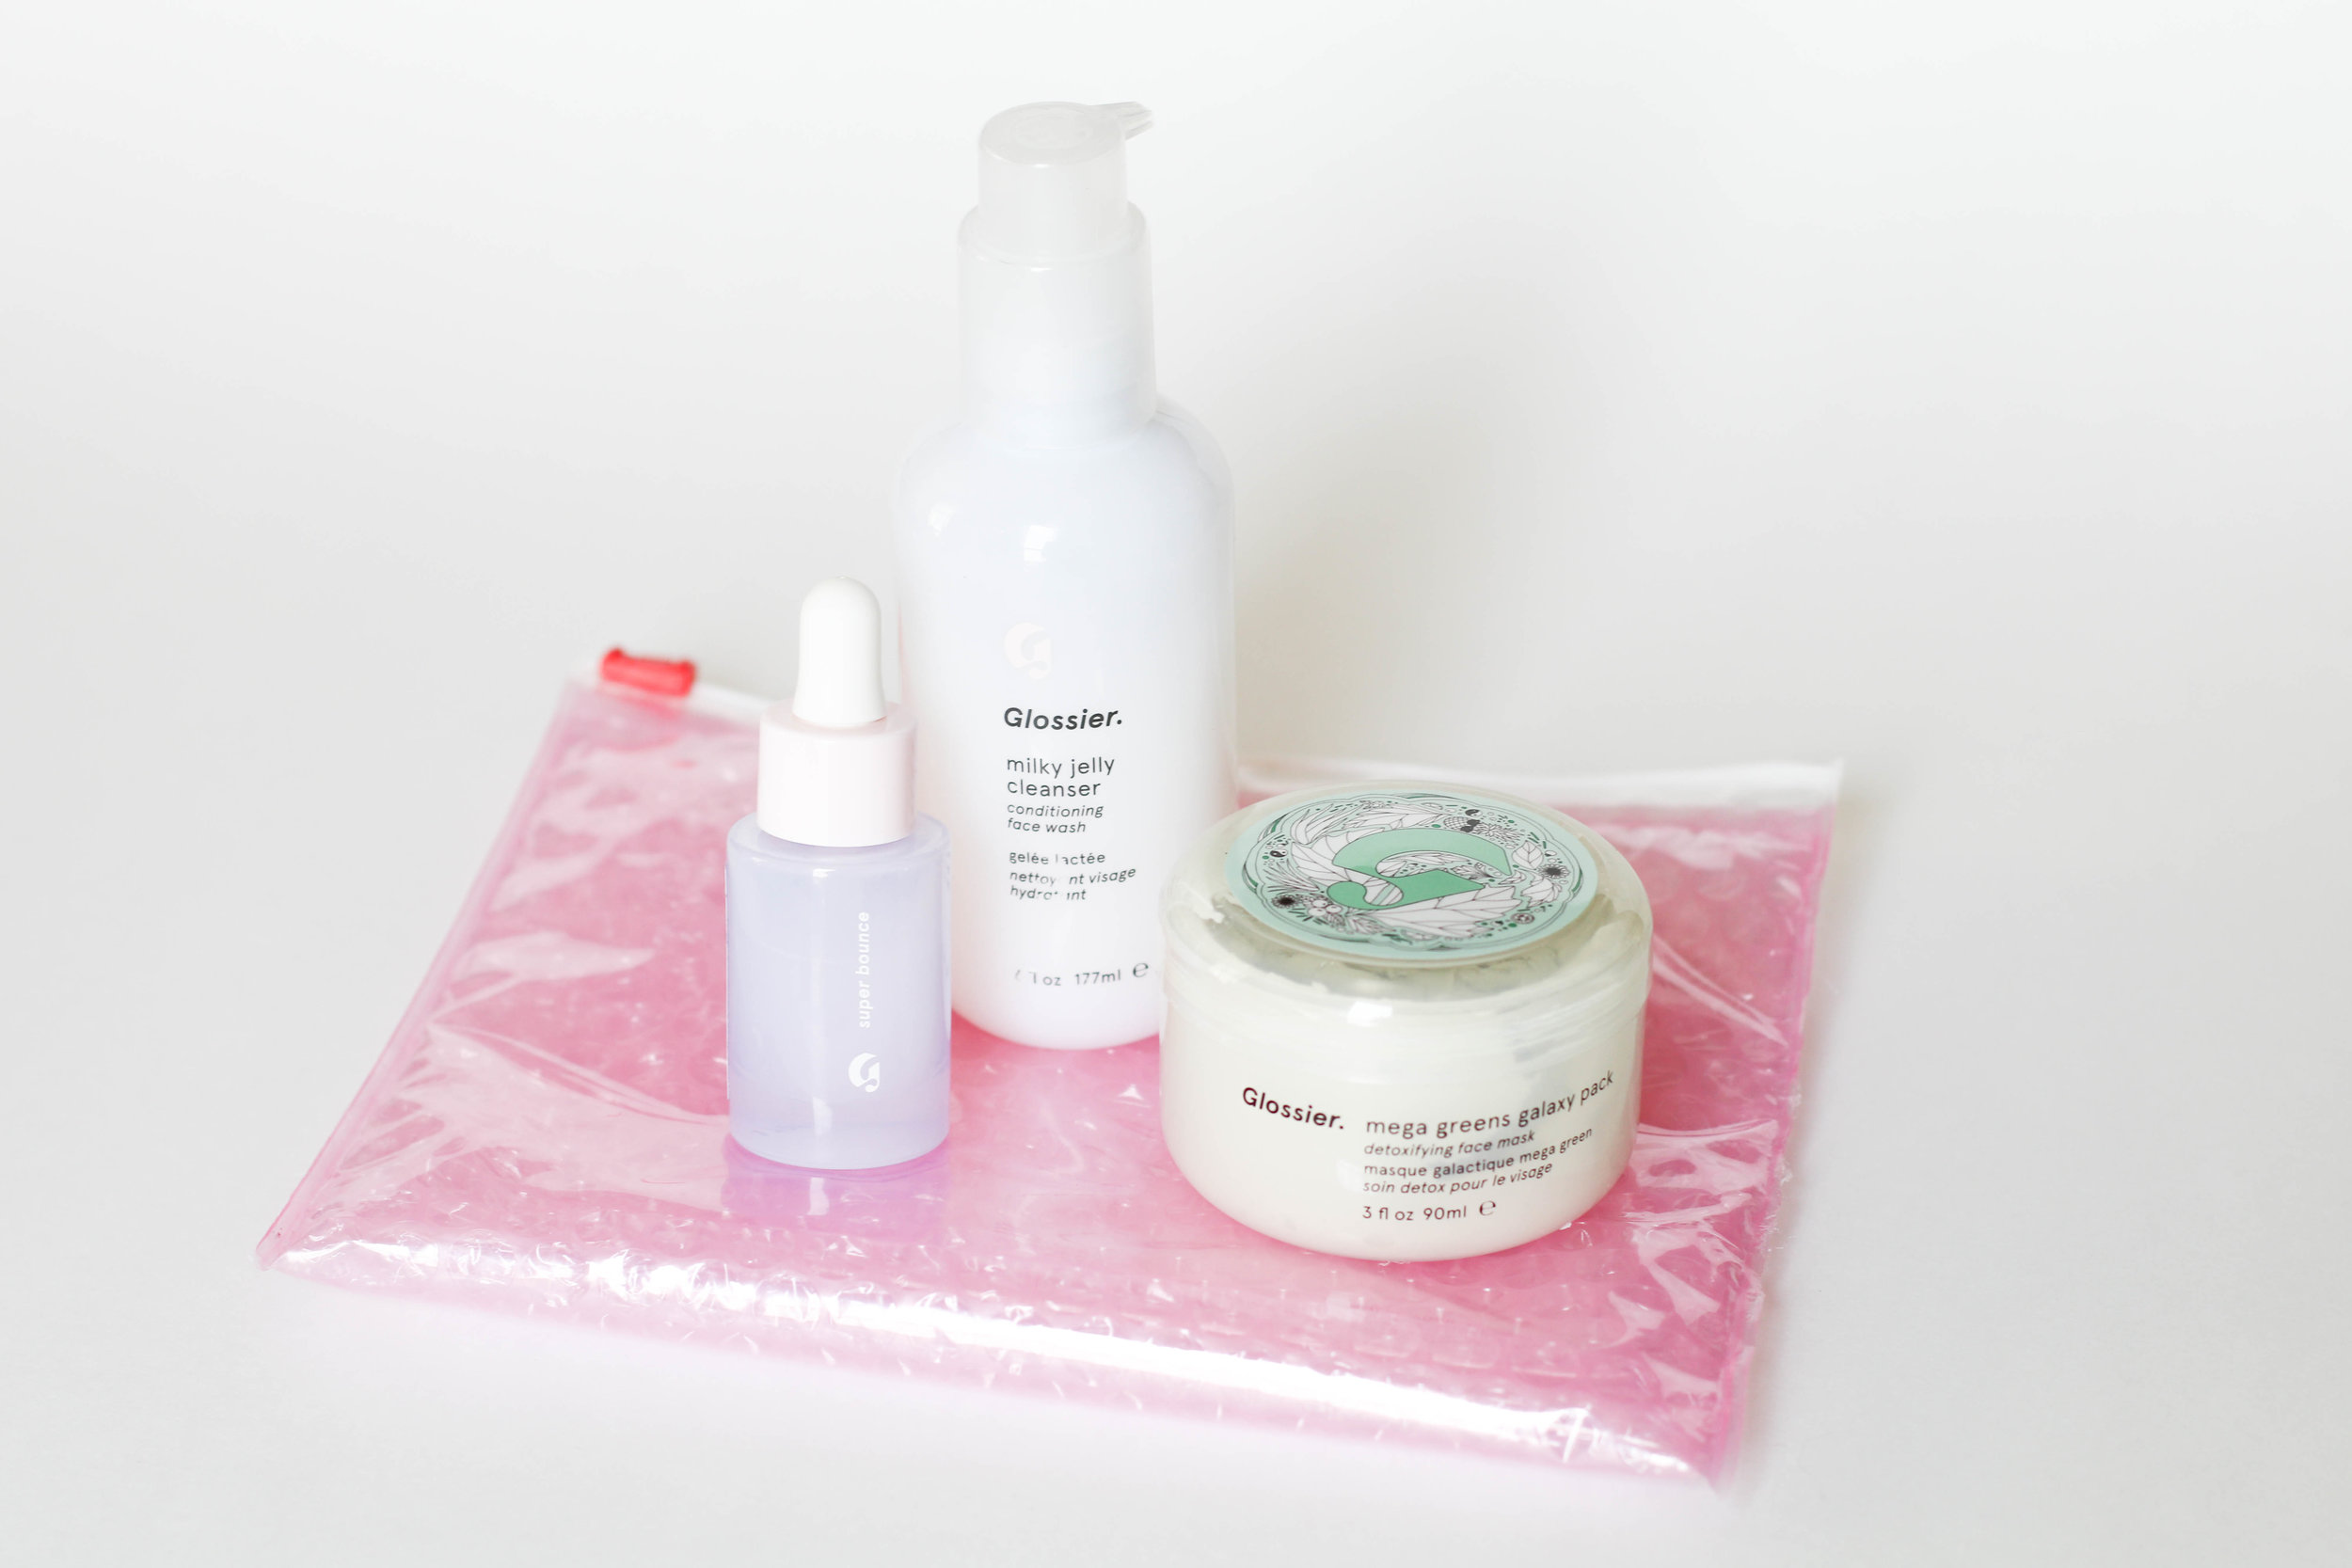 Skincare - Super Bounce -Milky Jelly Cleanser - Mega Greens Galaxy Mask